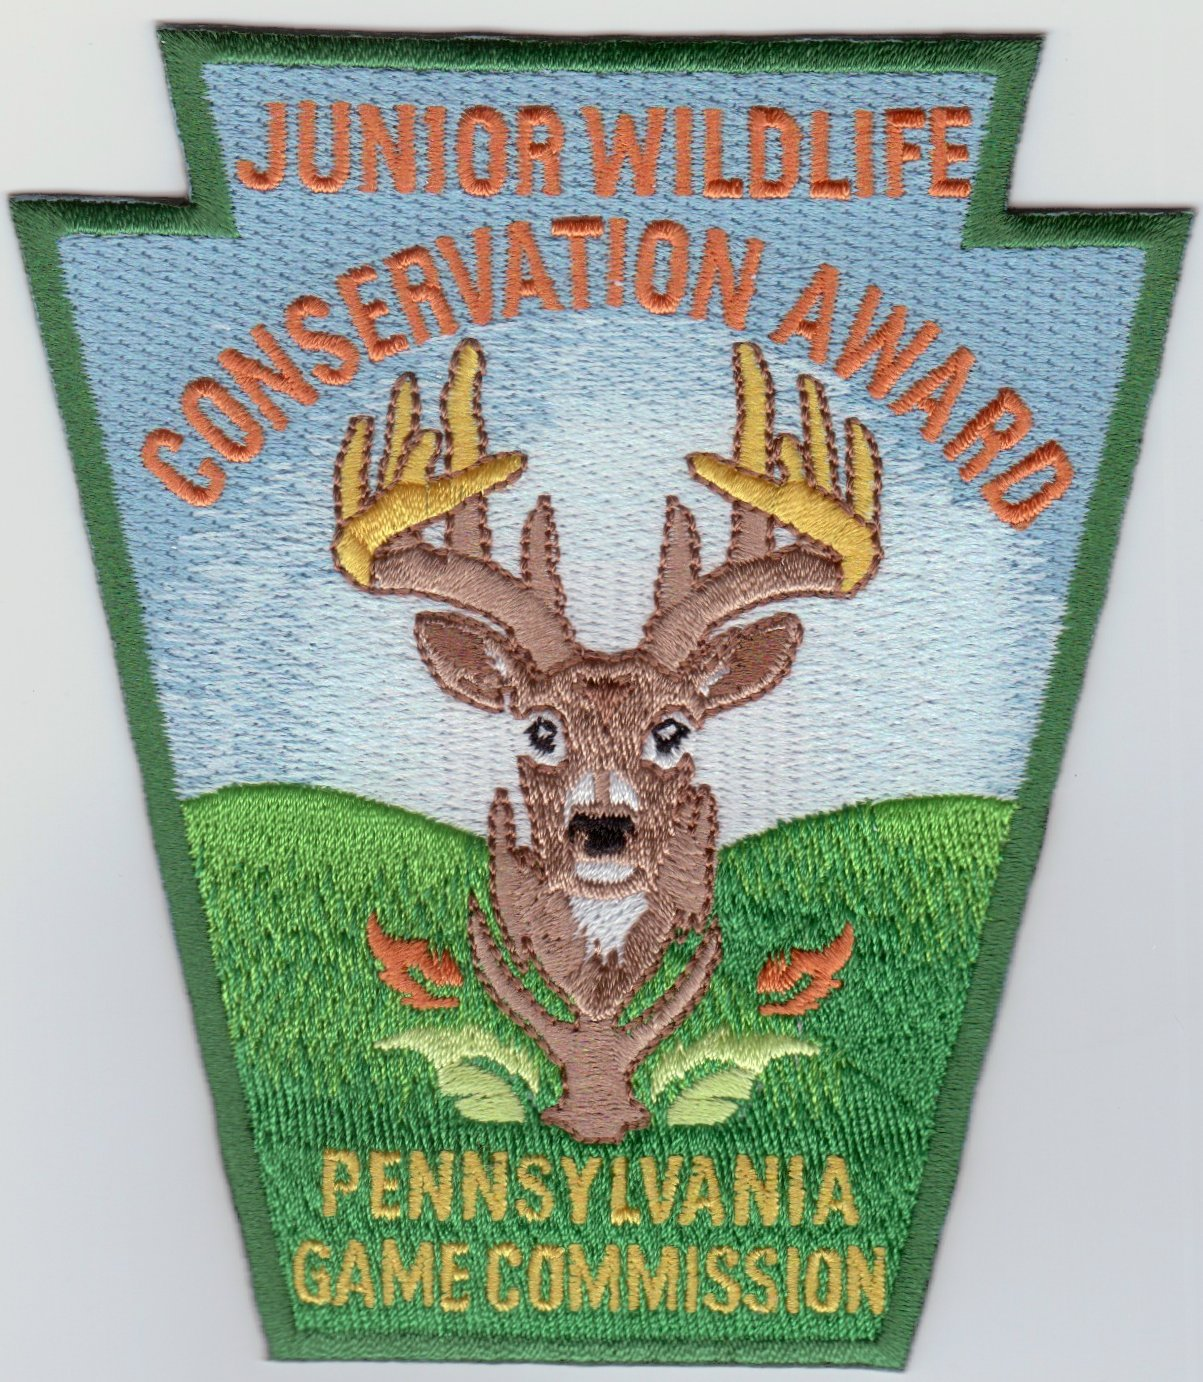 E12714 PENNSYLVANIA GAME COMMISSION (PA) | The Emblem Authority